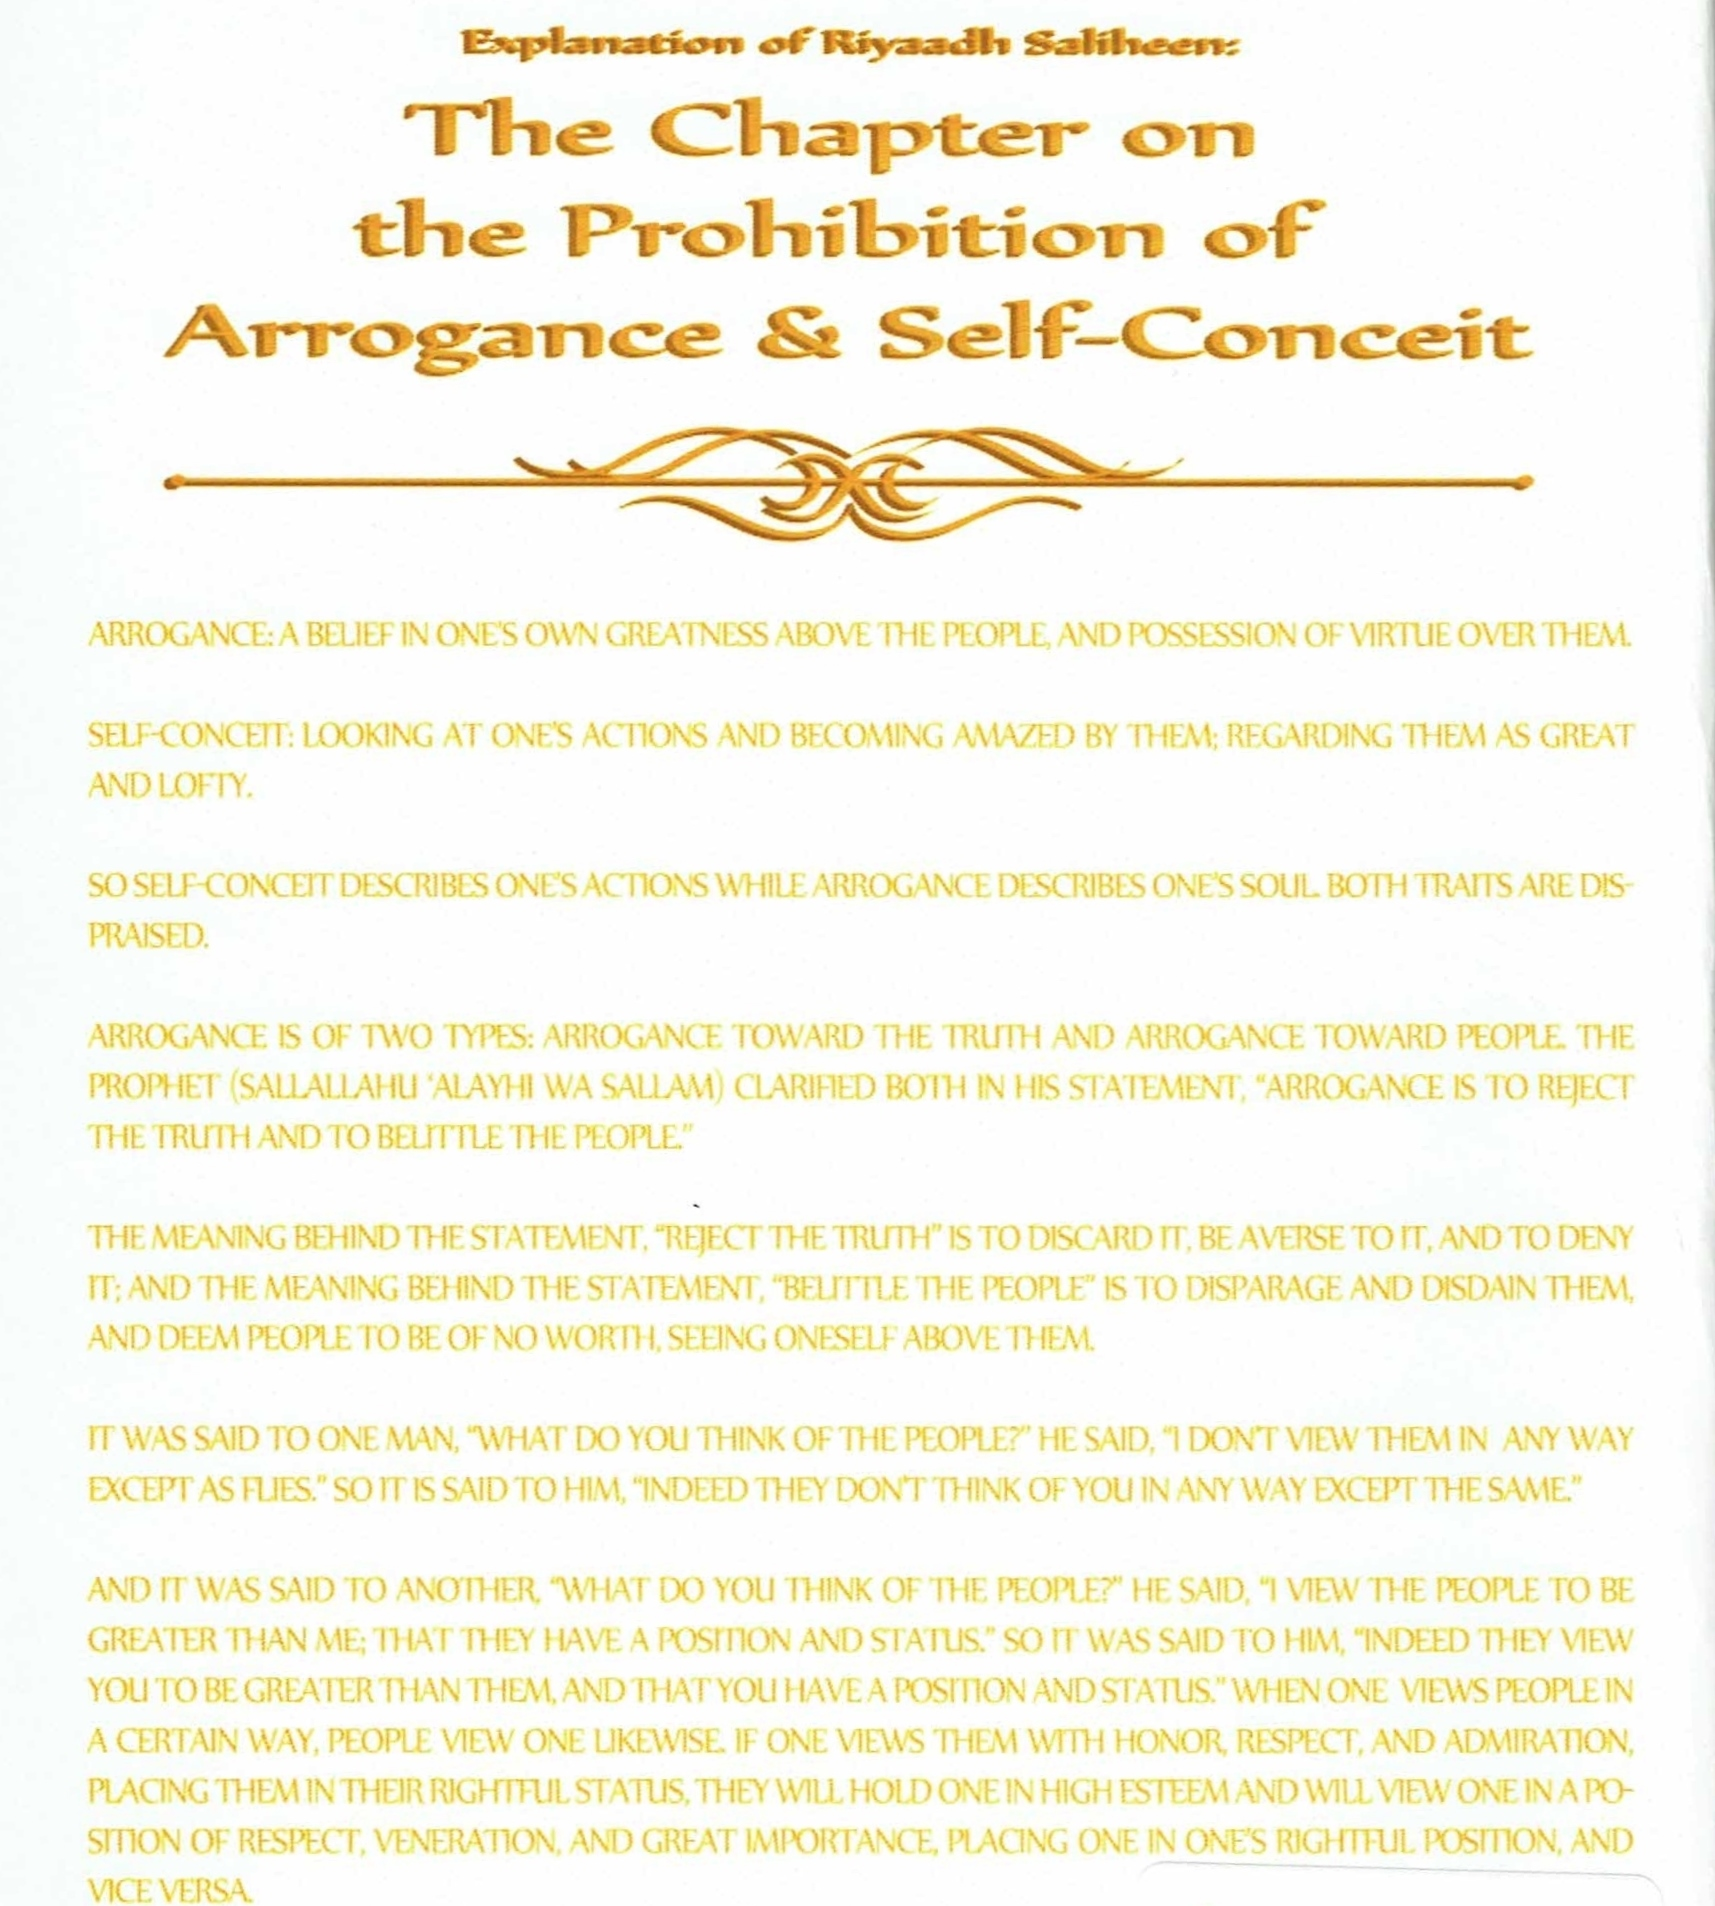 explanation-of-riyaadh-saliheen-the-chapter-on-the-prohibition-of-arrogance-and-self-conceit-3-.jpg